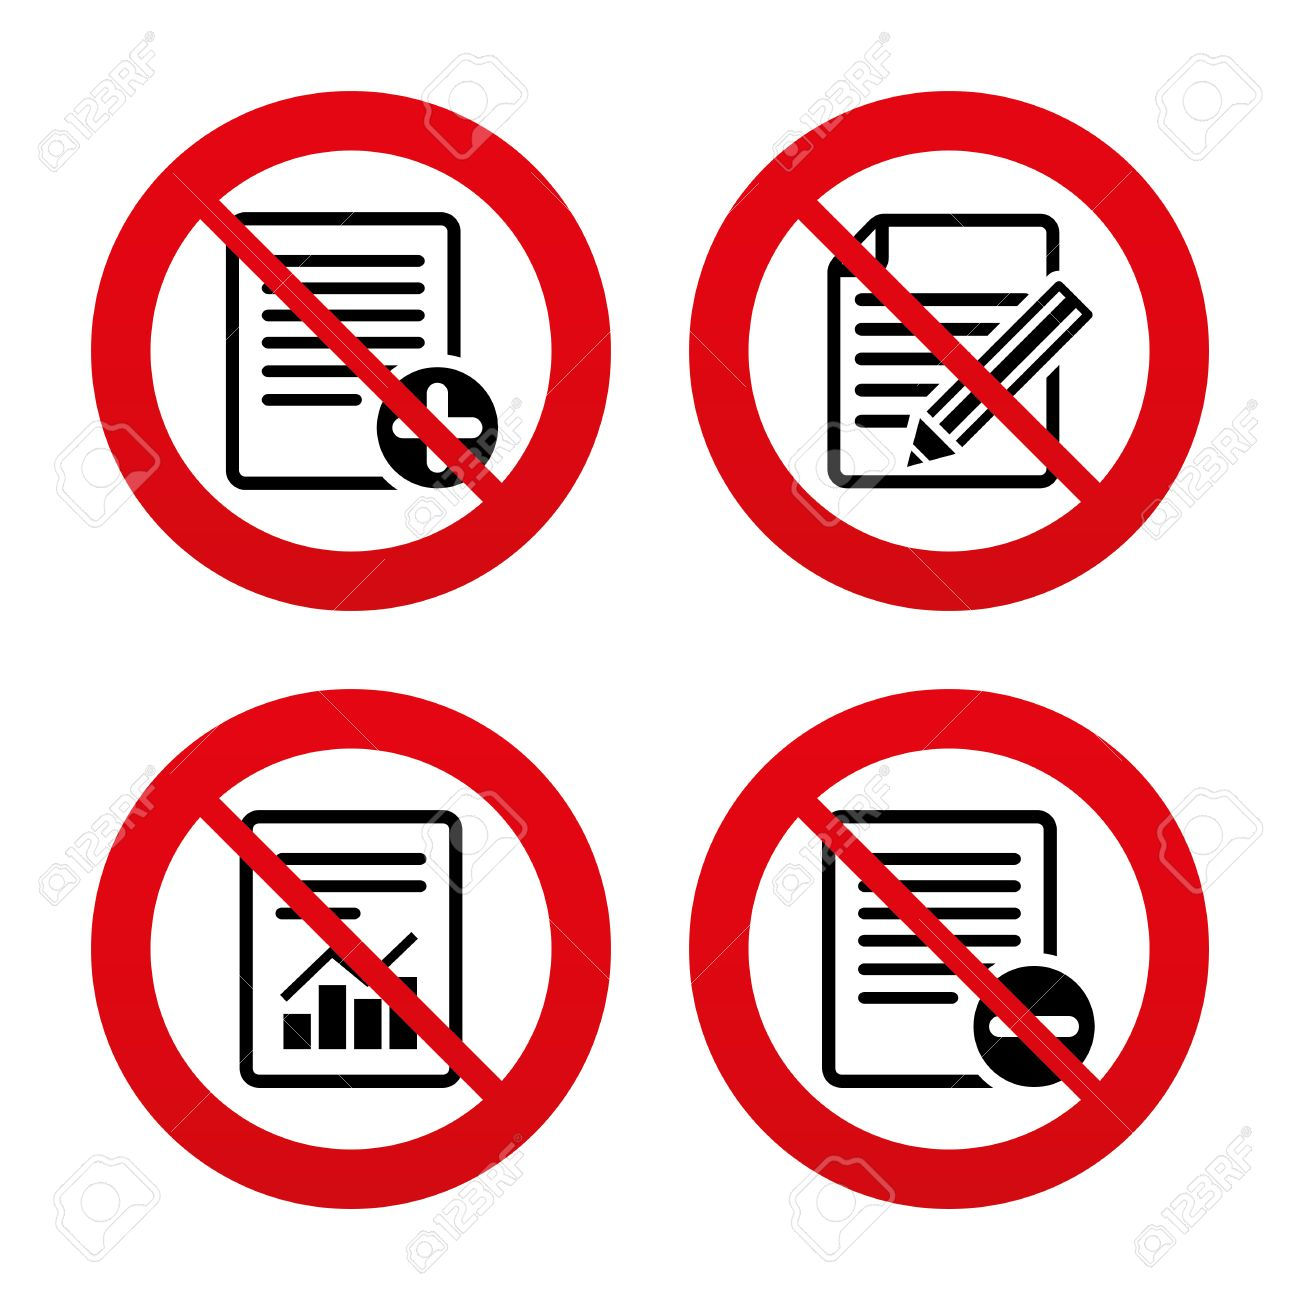 No ban or stop signs file document icons document with chart no ban or stop signs file document icons document with chart or graph buycottarizona